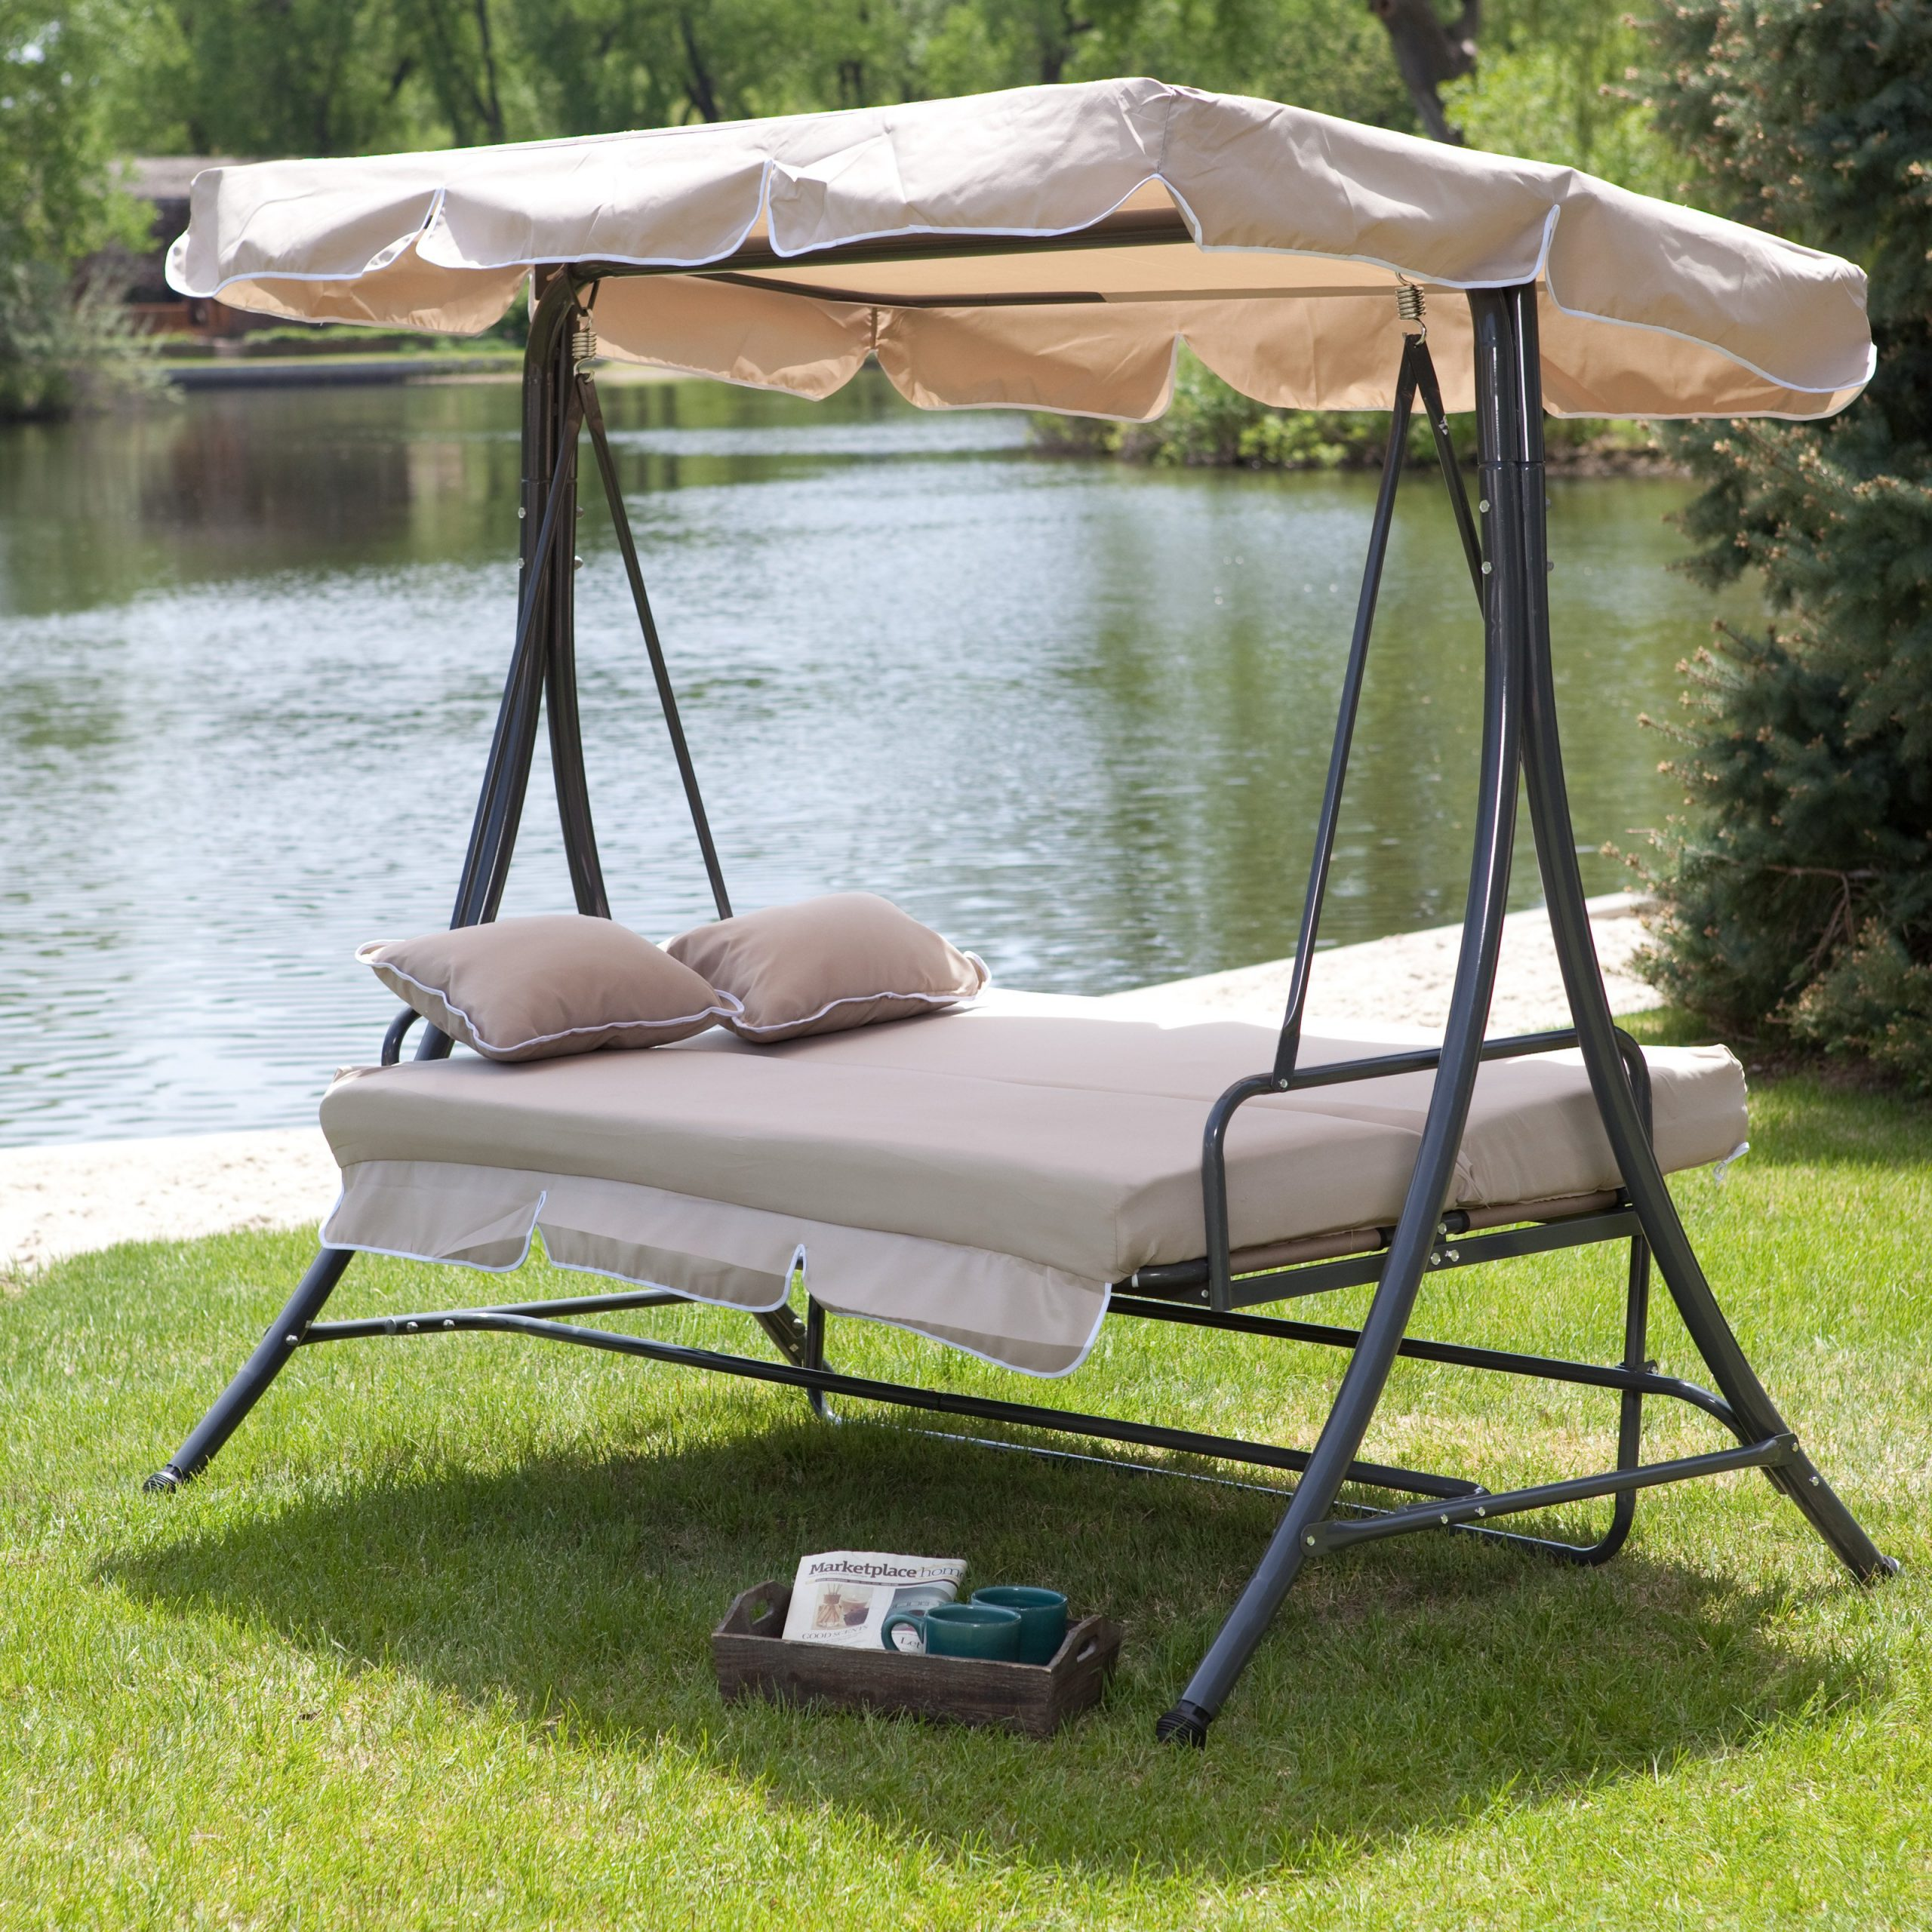 Hammock Patio Backyard Ll Bean Stand Poolside Double Outdoor Throughout Patio Loveseat Canopy Hammock Porch Swings With Stand (Image 15 of 25)